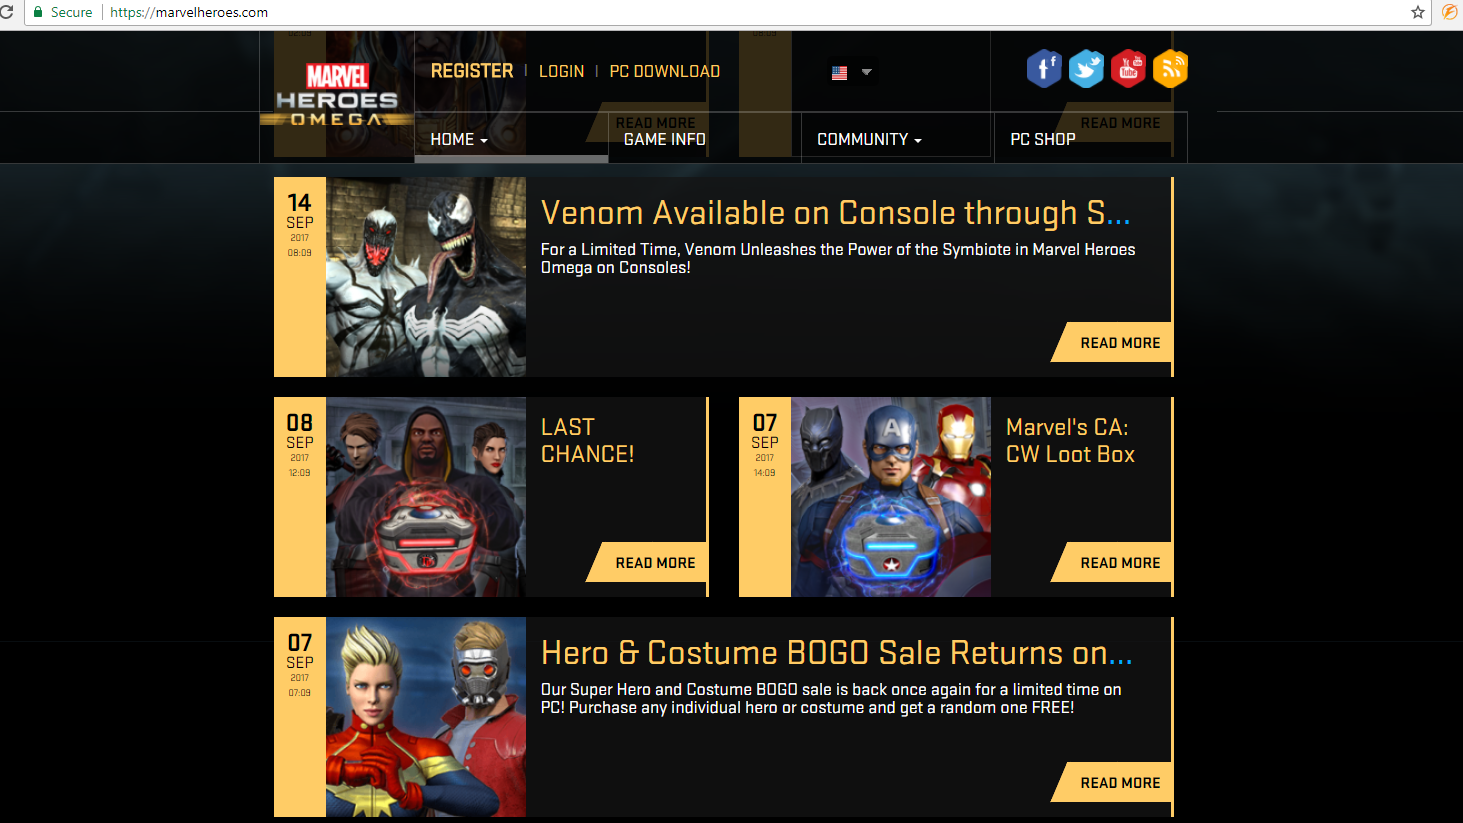 Screenshot of official Marvel Heroes Omega website in September of 2017. Created multiple assets and formatted content.